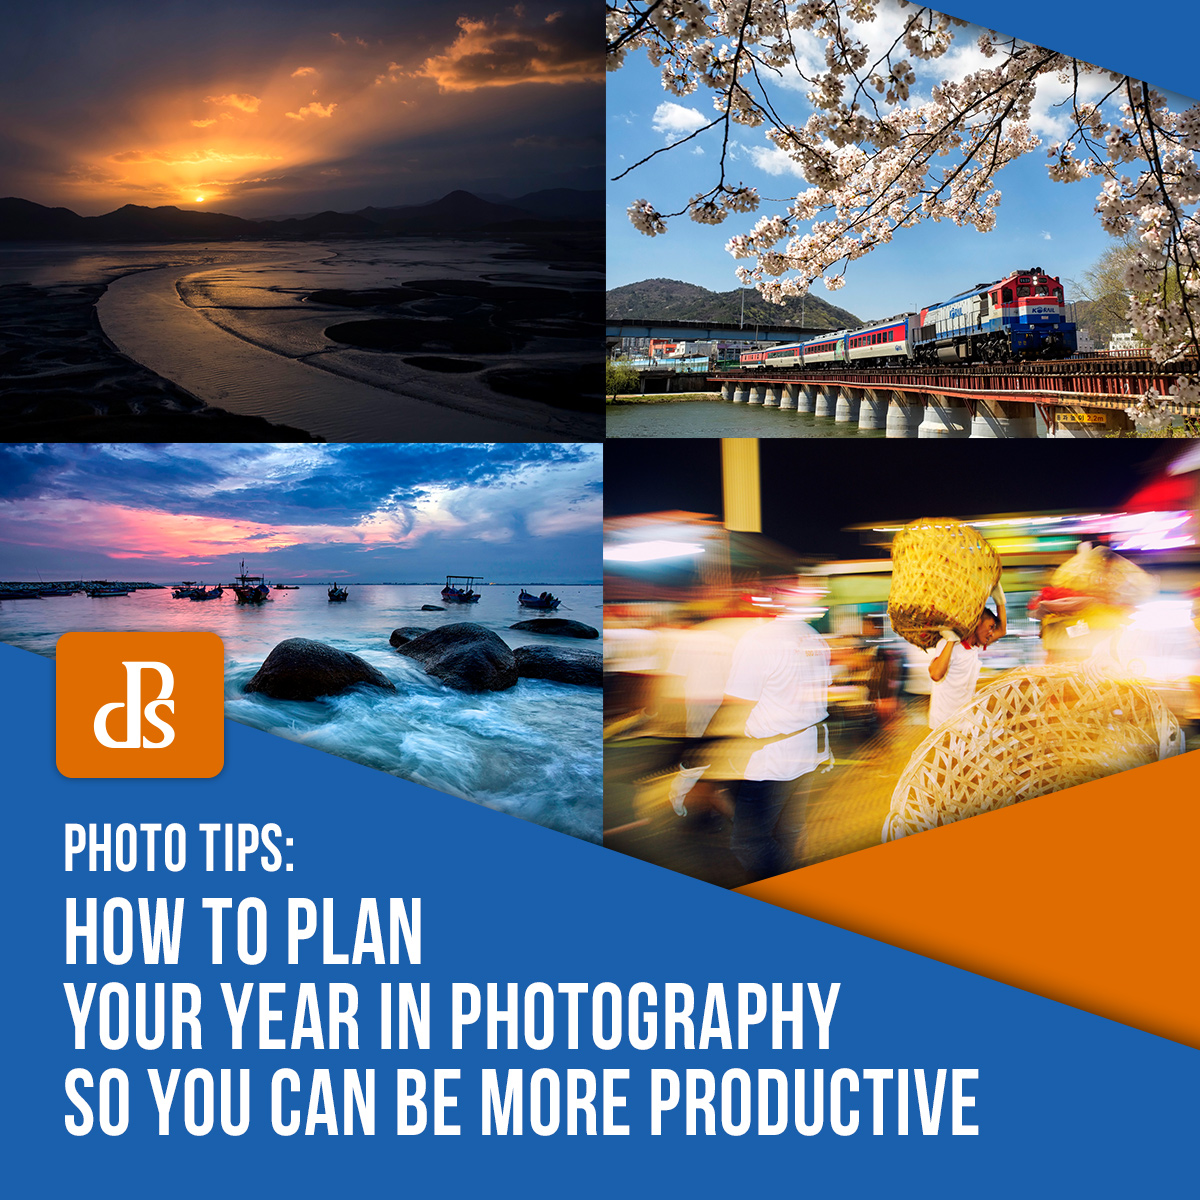 plan-your-year-in-photography